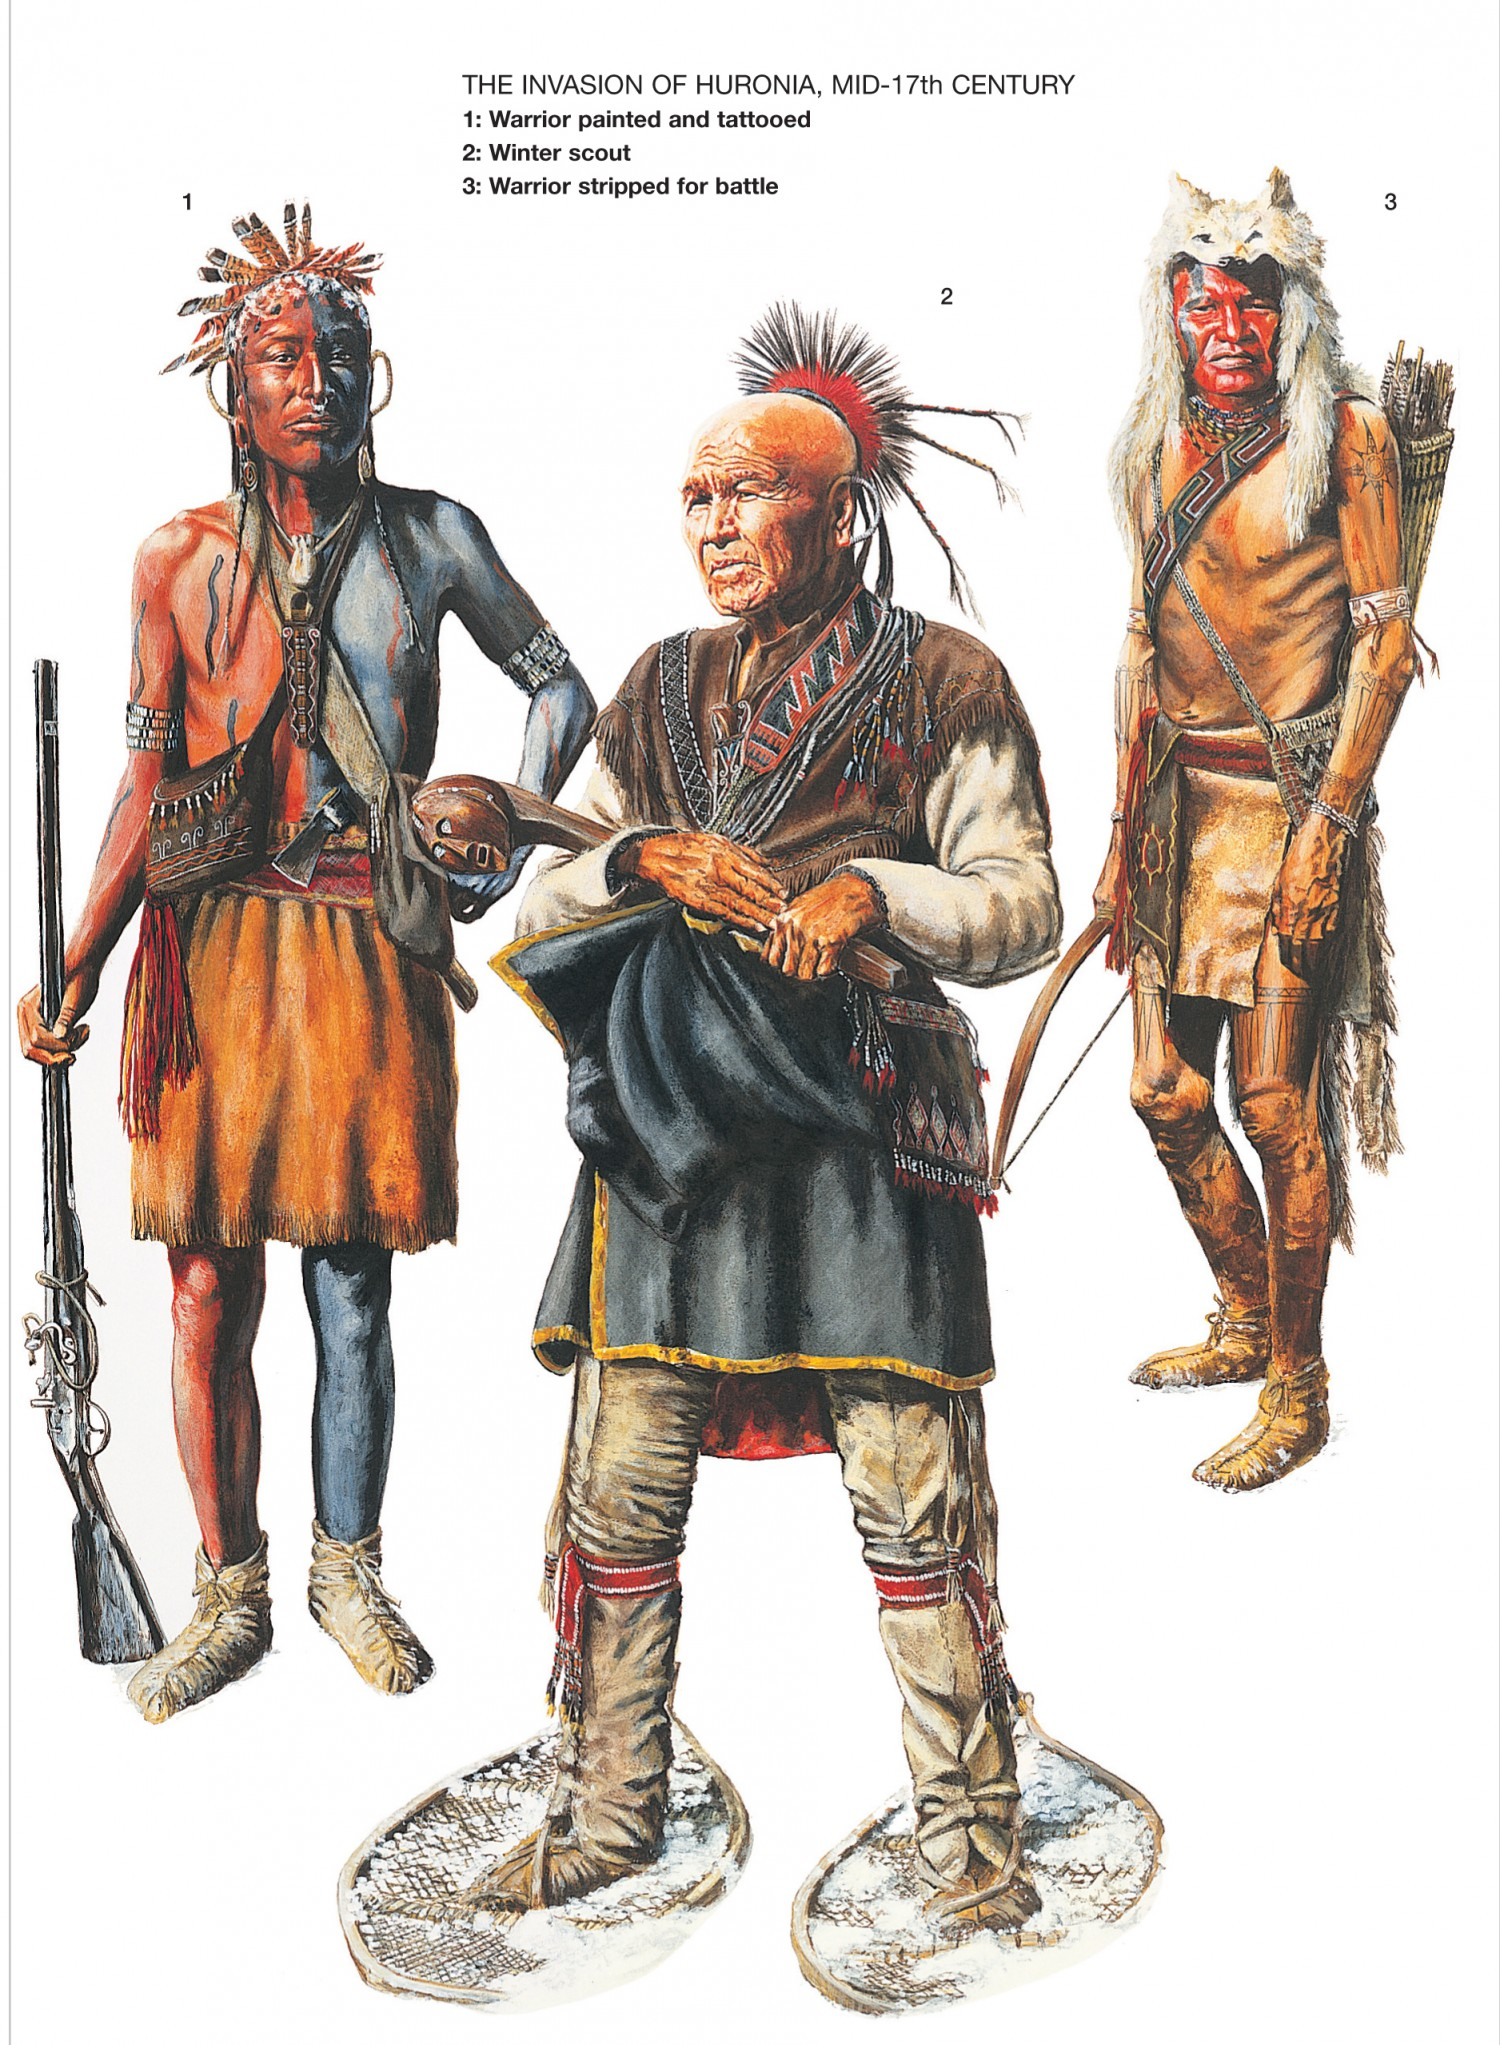 the founding of the iroquois league of nations and its role in american freedom push Each of these native american nations has beliefs in tribal sovereignty and a collective body called a league these nations had a supralevel affirmation in the sovereignty of the two leagues between onondaga and new york.